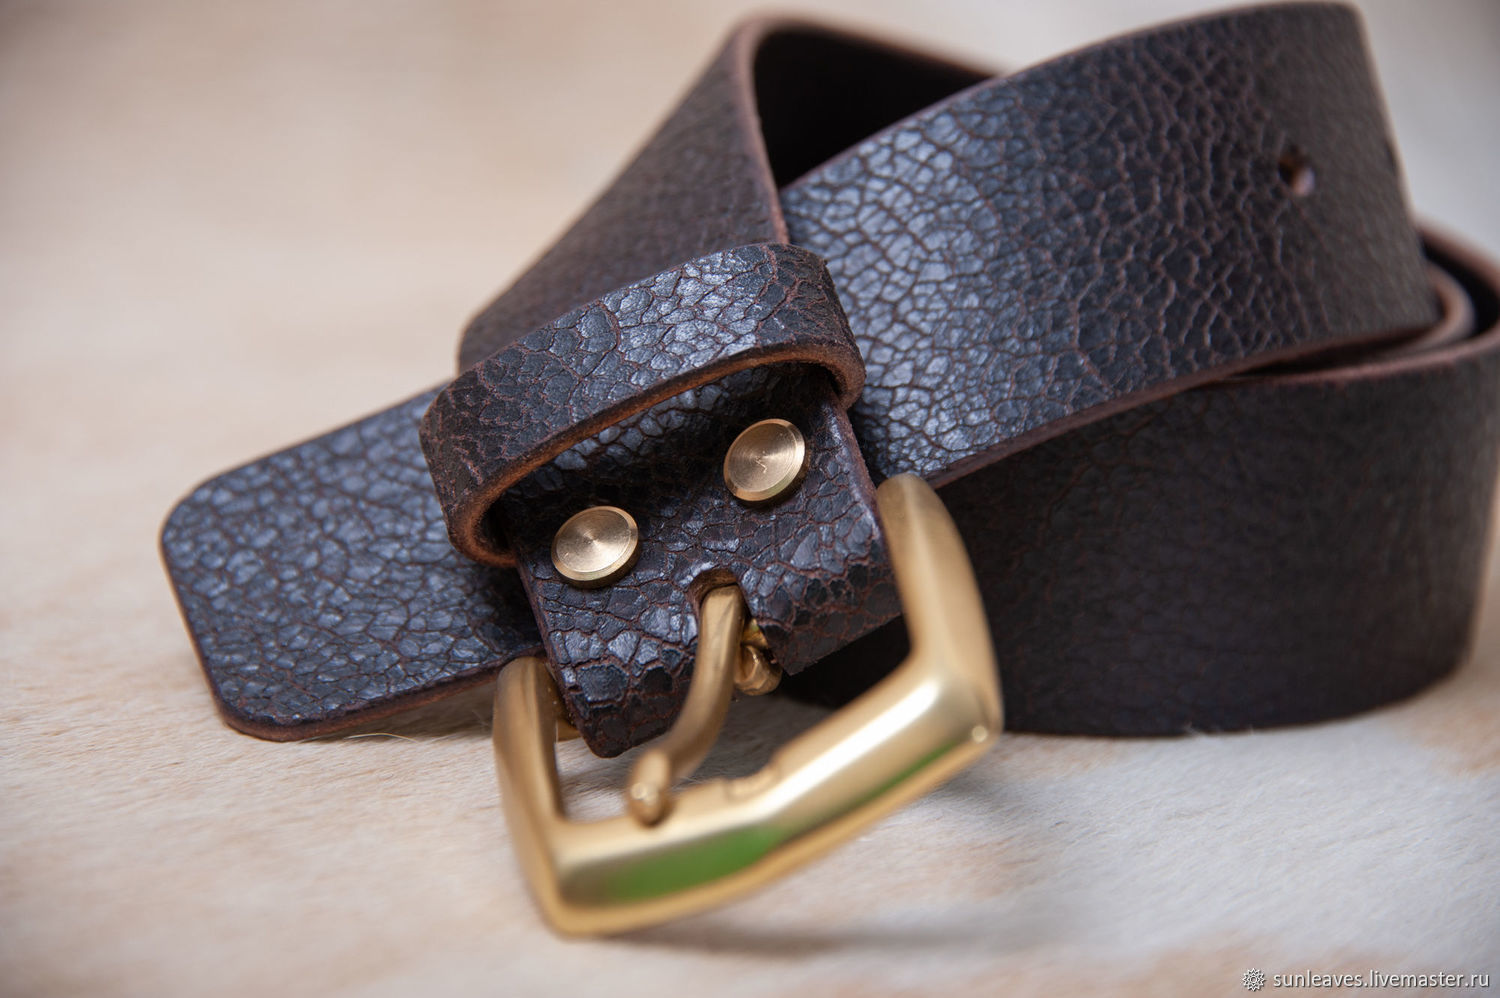 The genuine leather strap 'Stylish classic', Straps, St. Petersburg,  Фото №1